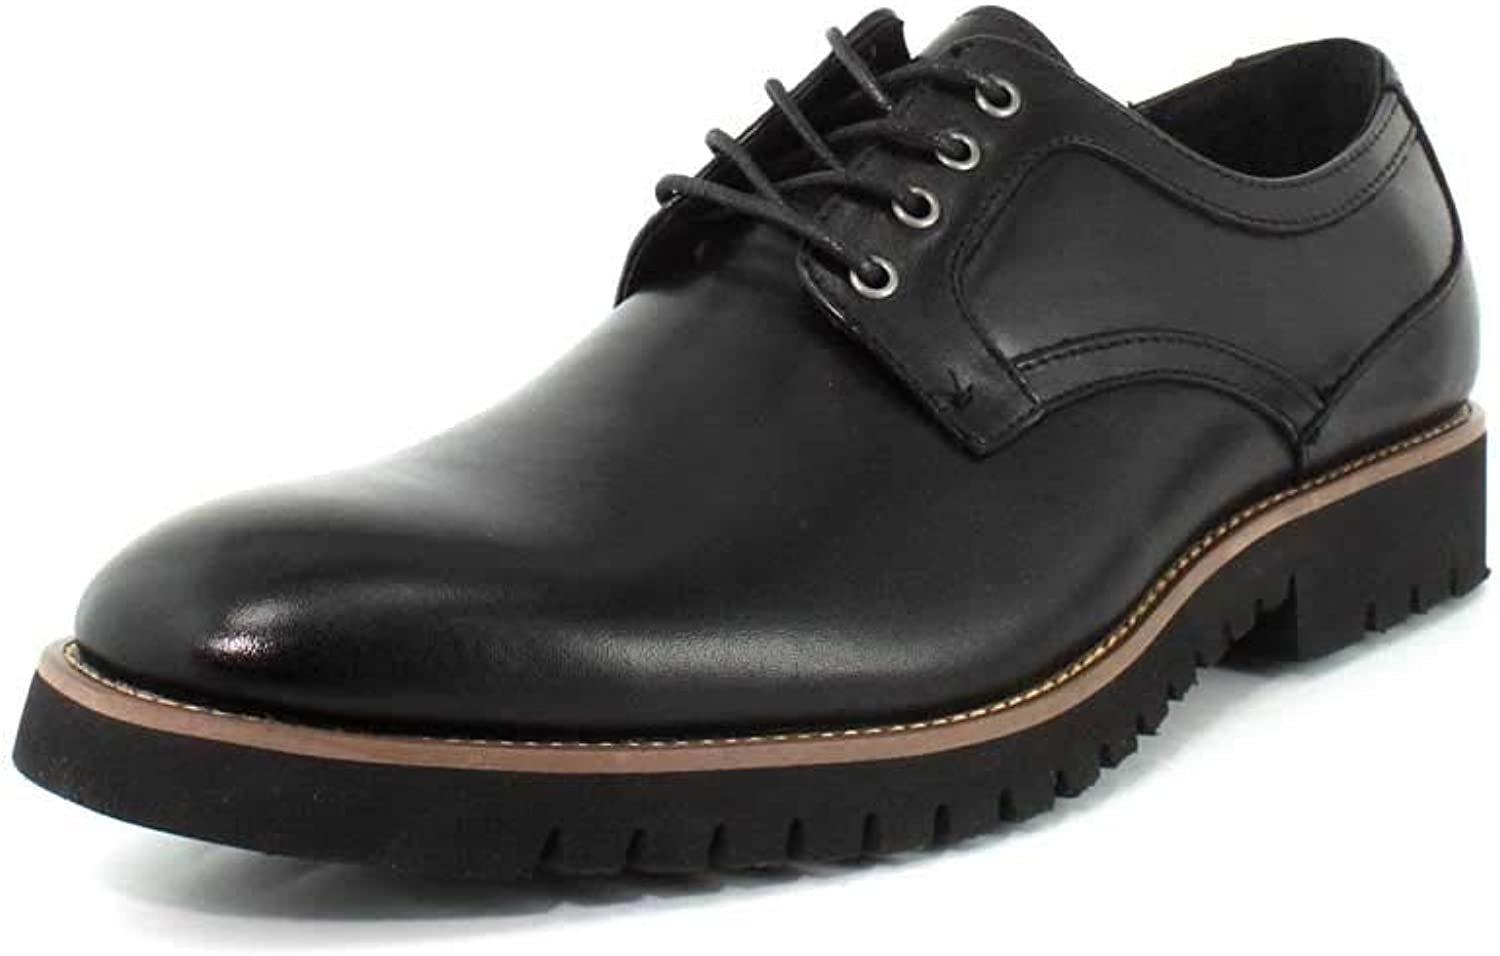 STACY ADAMS Men's Barclay Plain Toe Toe Toe Lace Up Oxford Black 11 D US B07D8CWPQJ  b77221